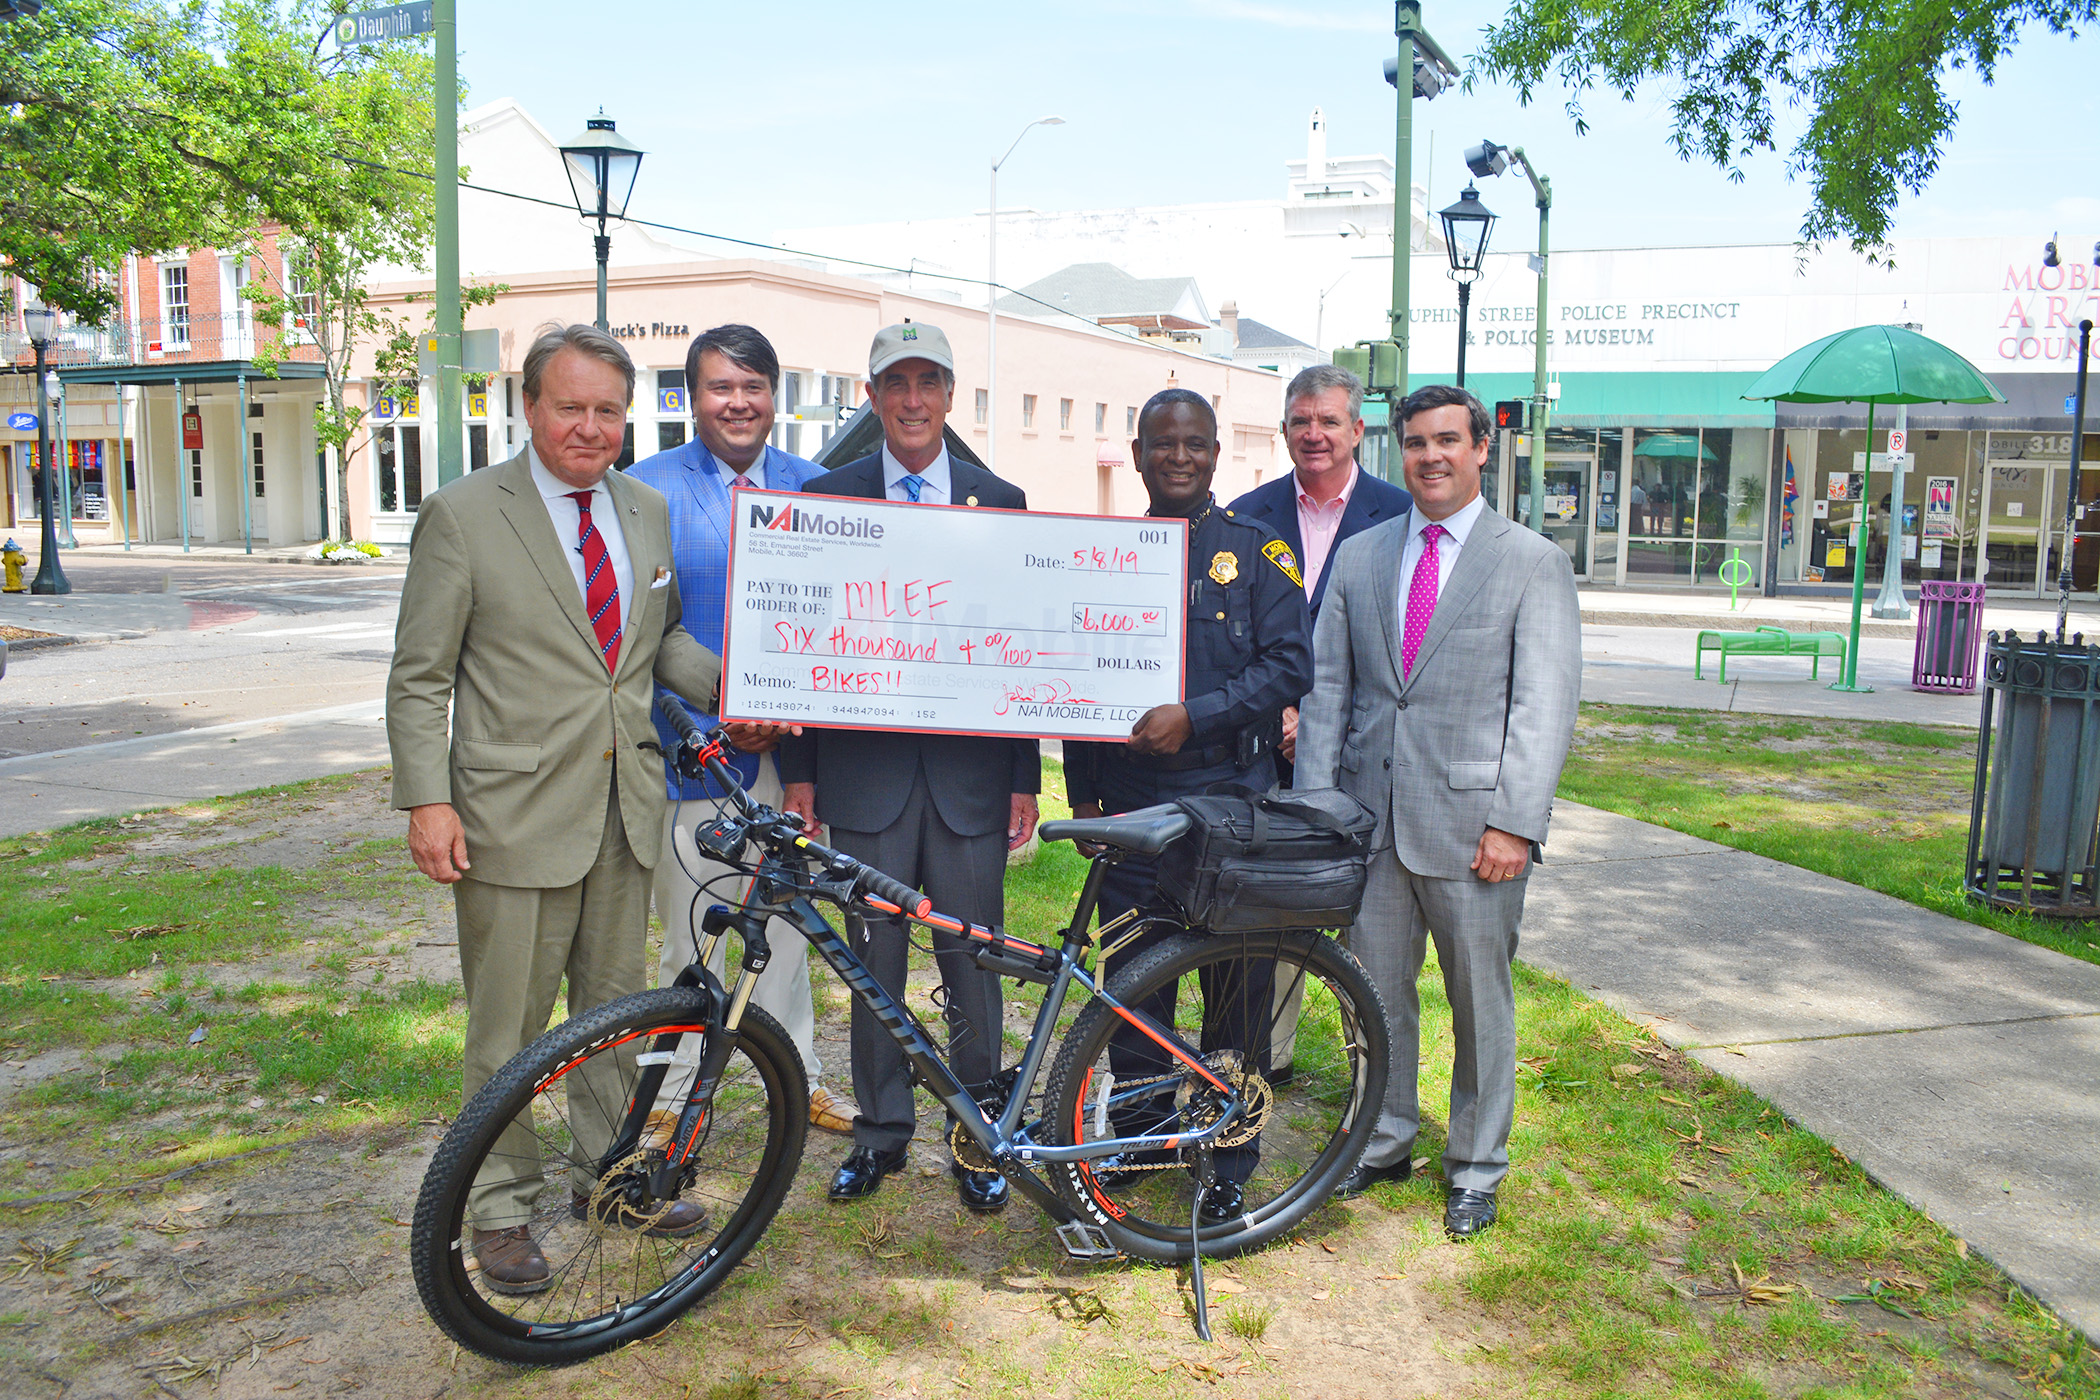 NAI Mobile Donates to Downtown MPD